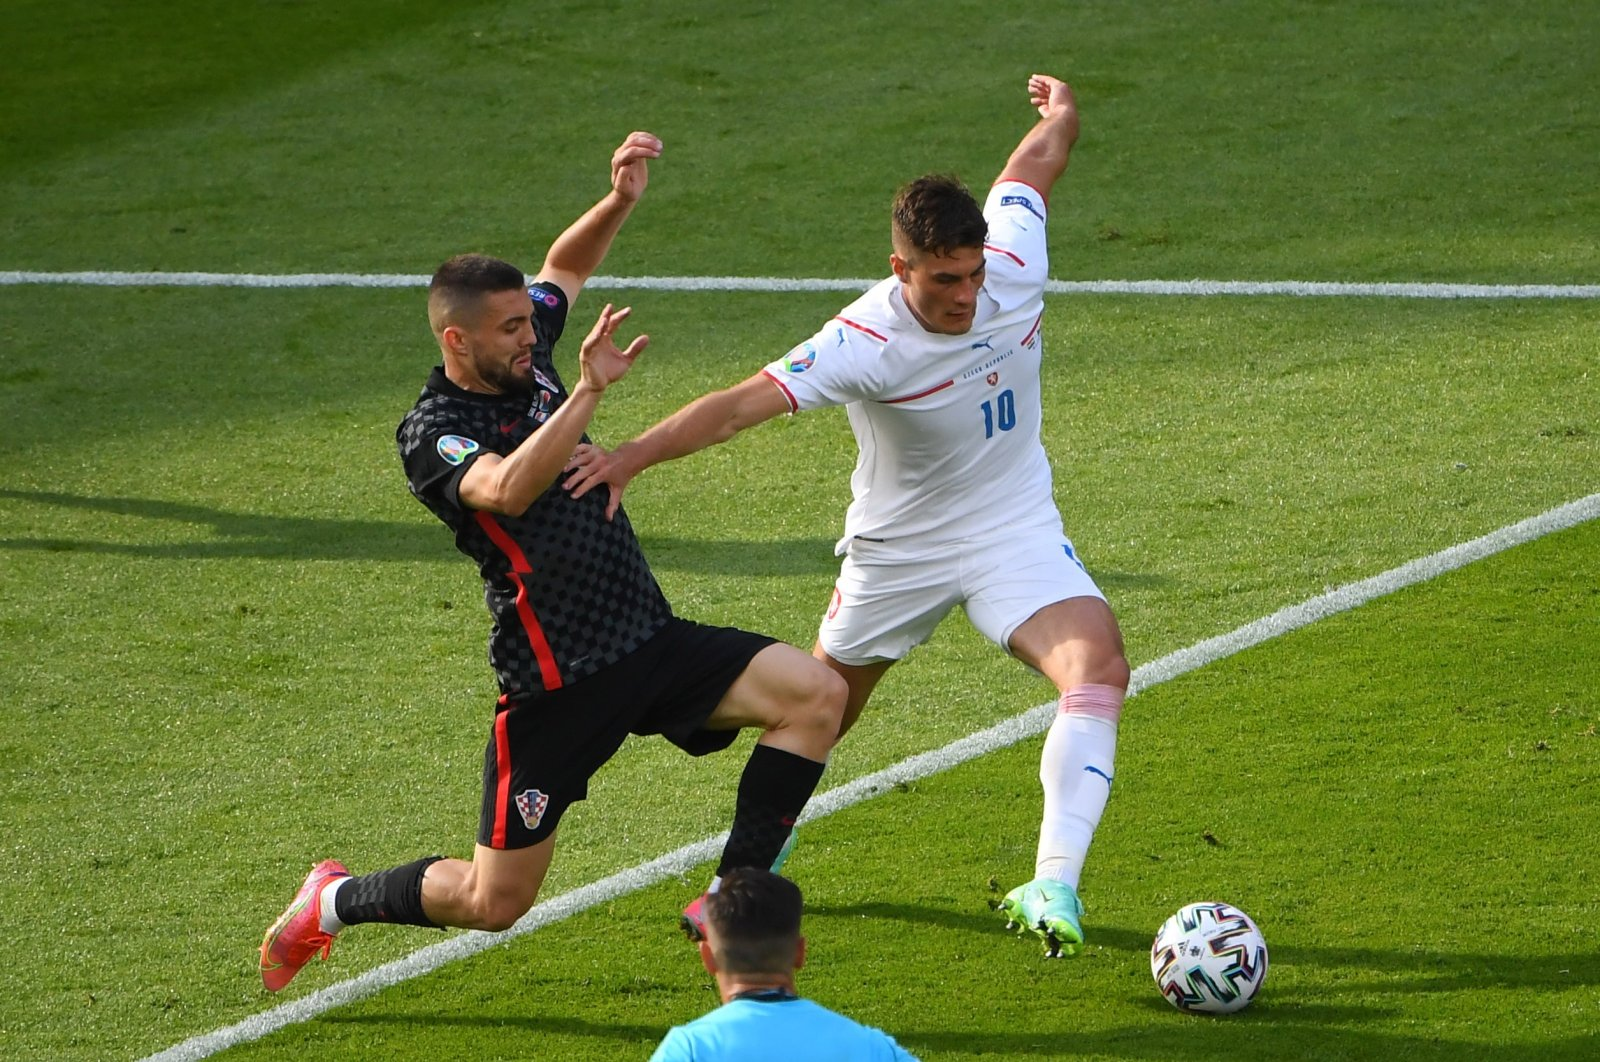 'Schickening' continues as Crotia salvages draw at Euro 2020